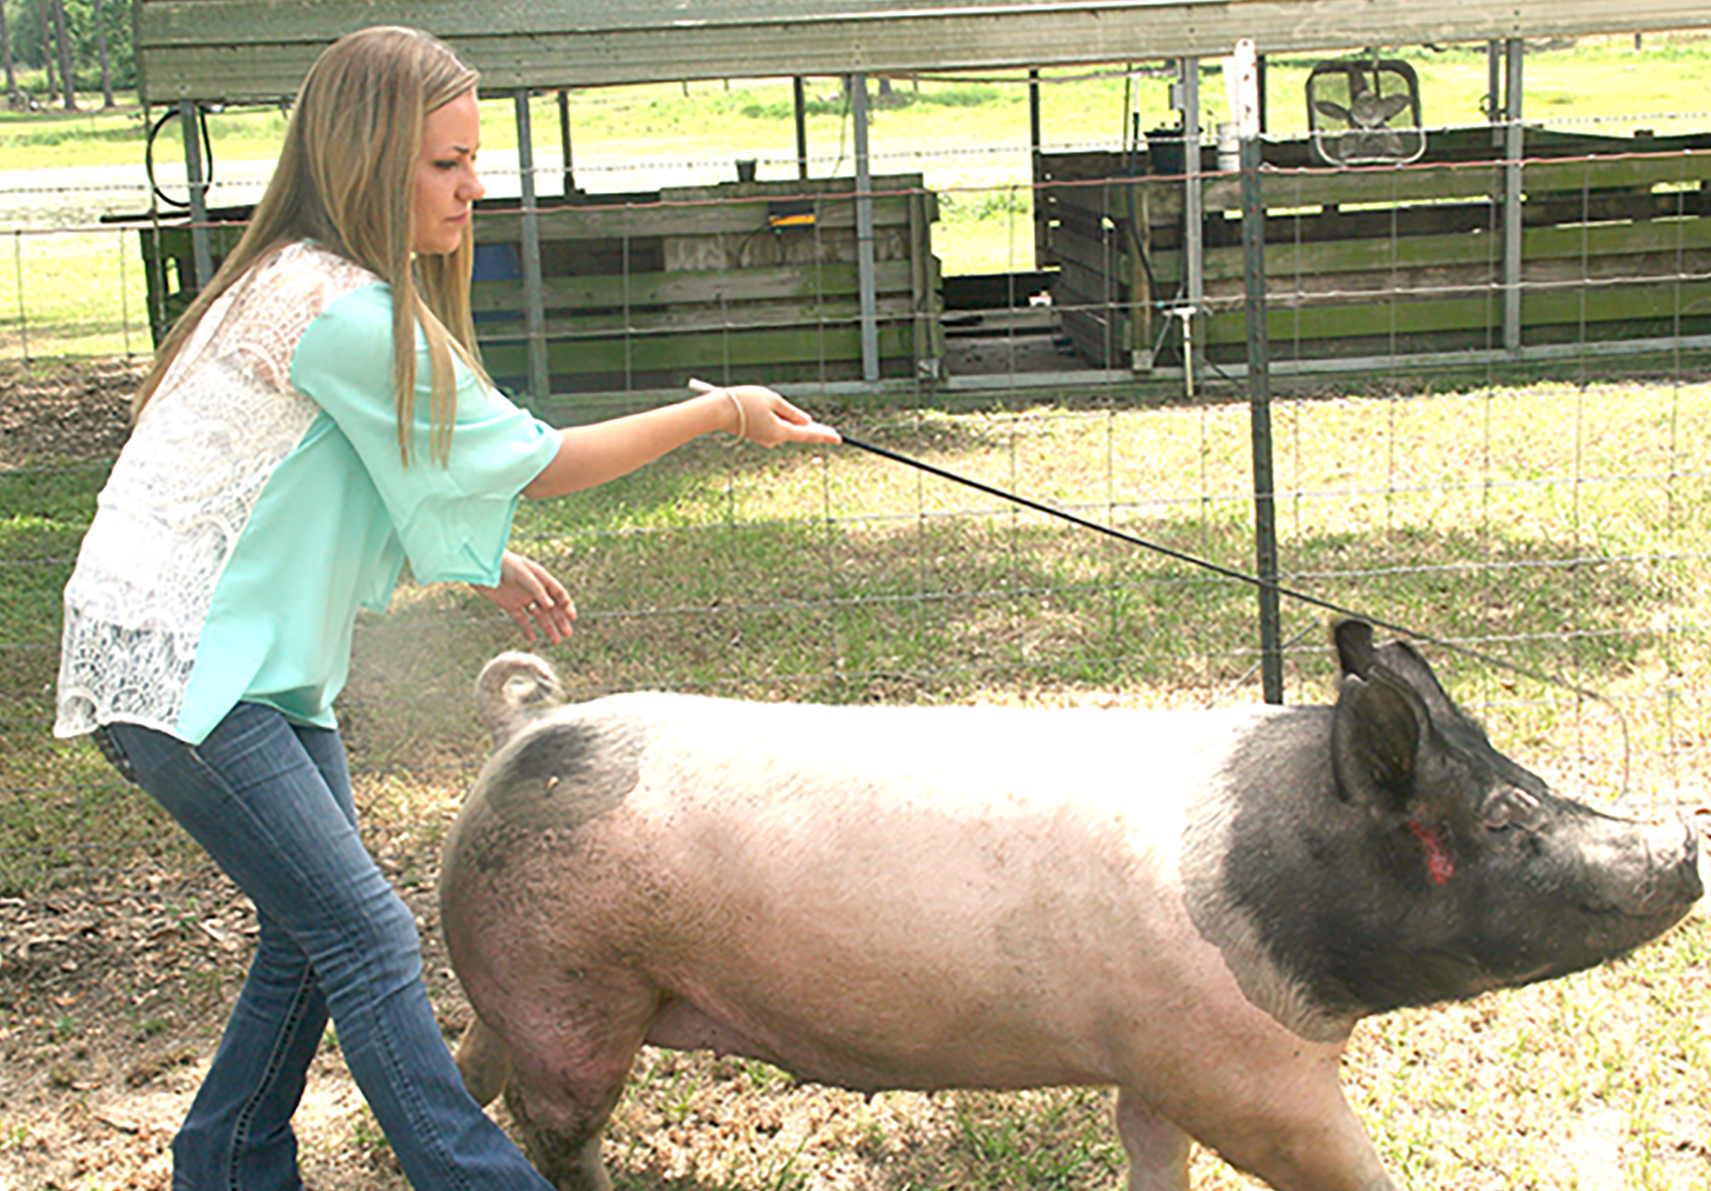 Courtney Conine walks her pig at her home in Camilla, Georgia.